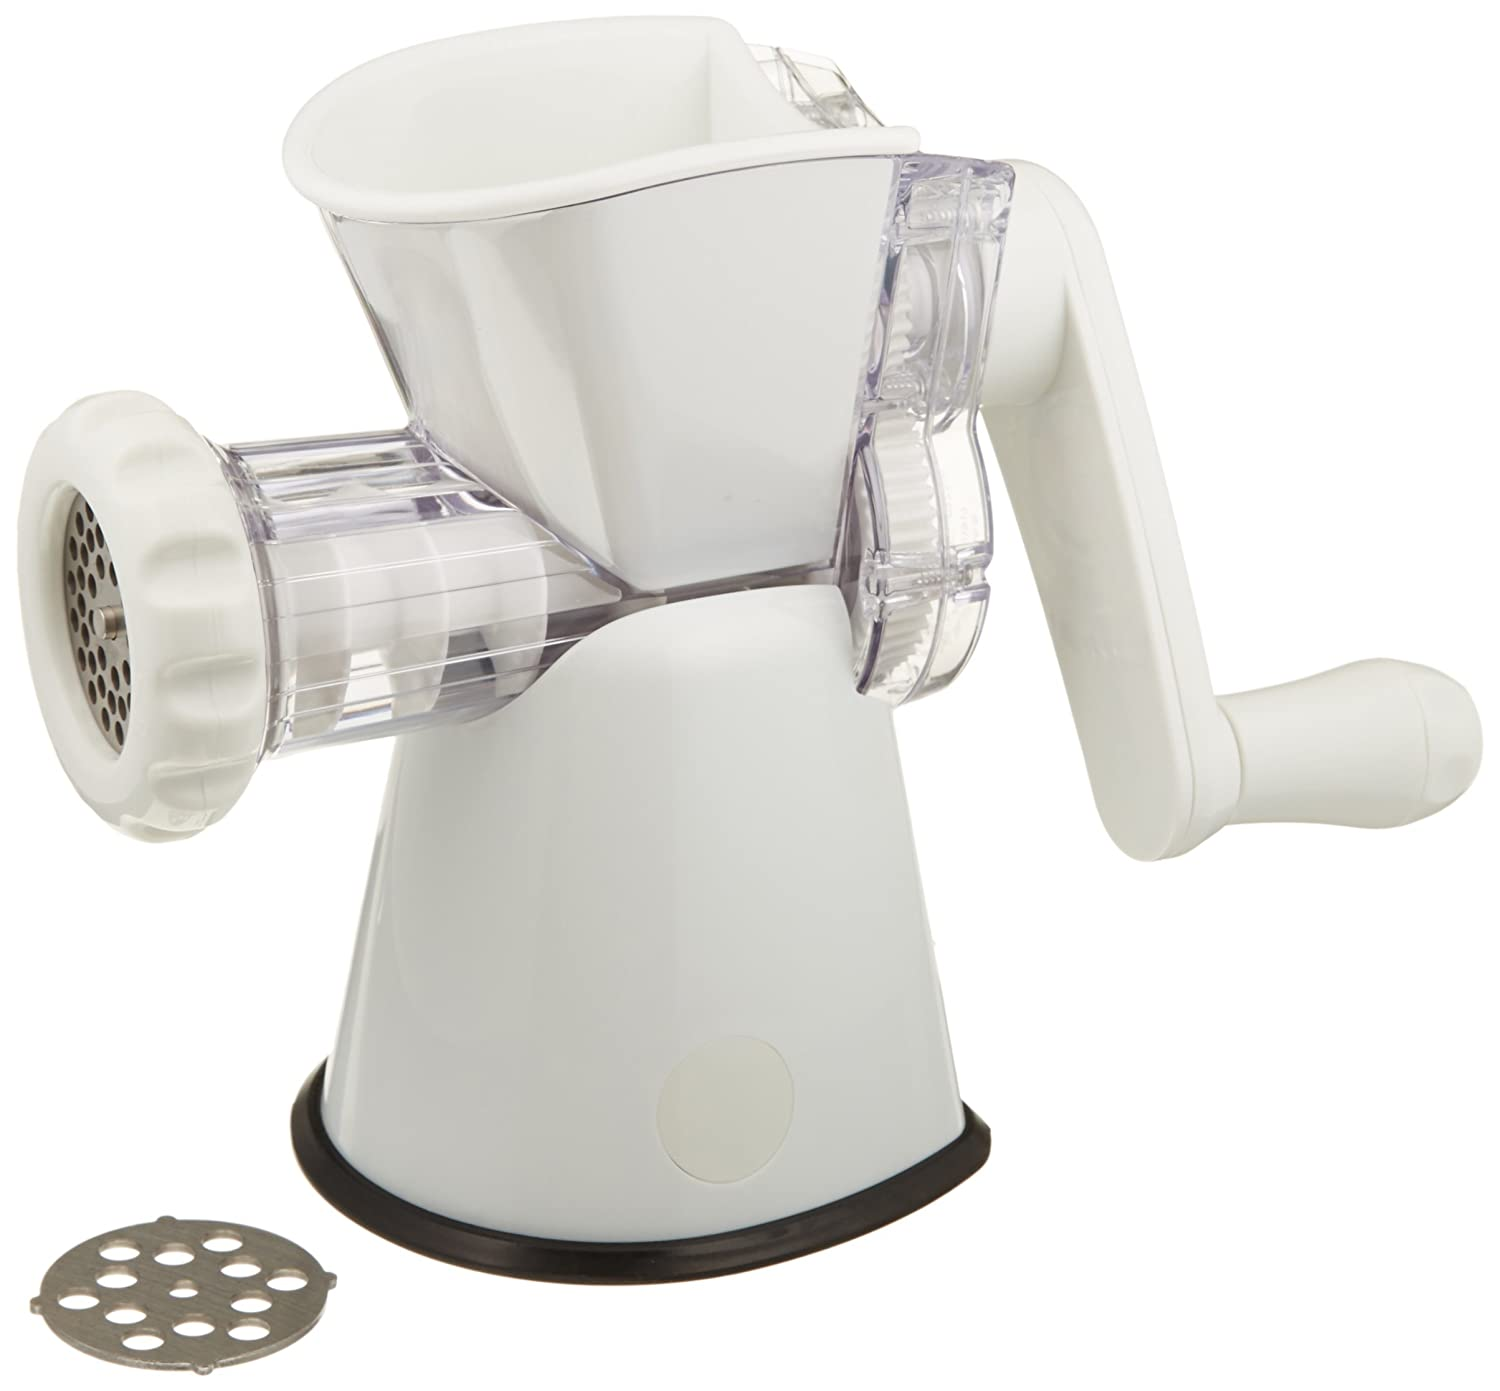 Weston No. 8 Manual Food Grinder (16-0201-W) for Fresh Ground Meats and Vegetables, With Sturdy Suction Base